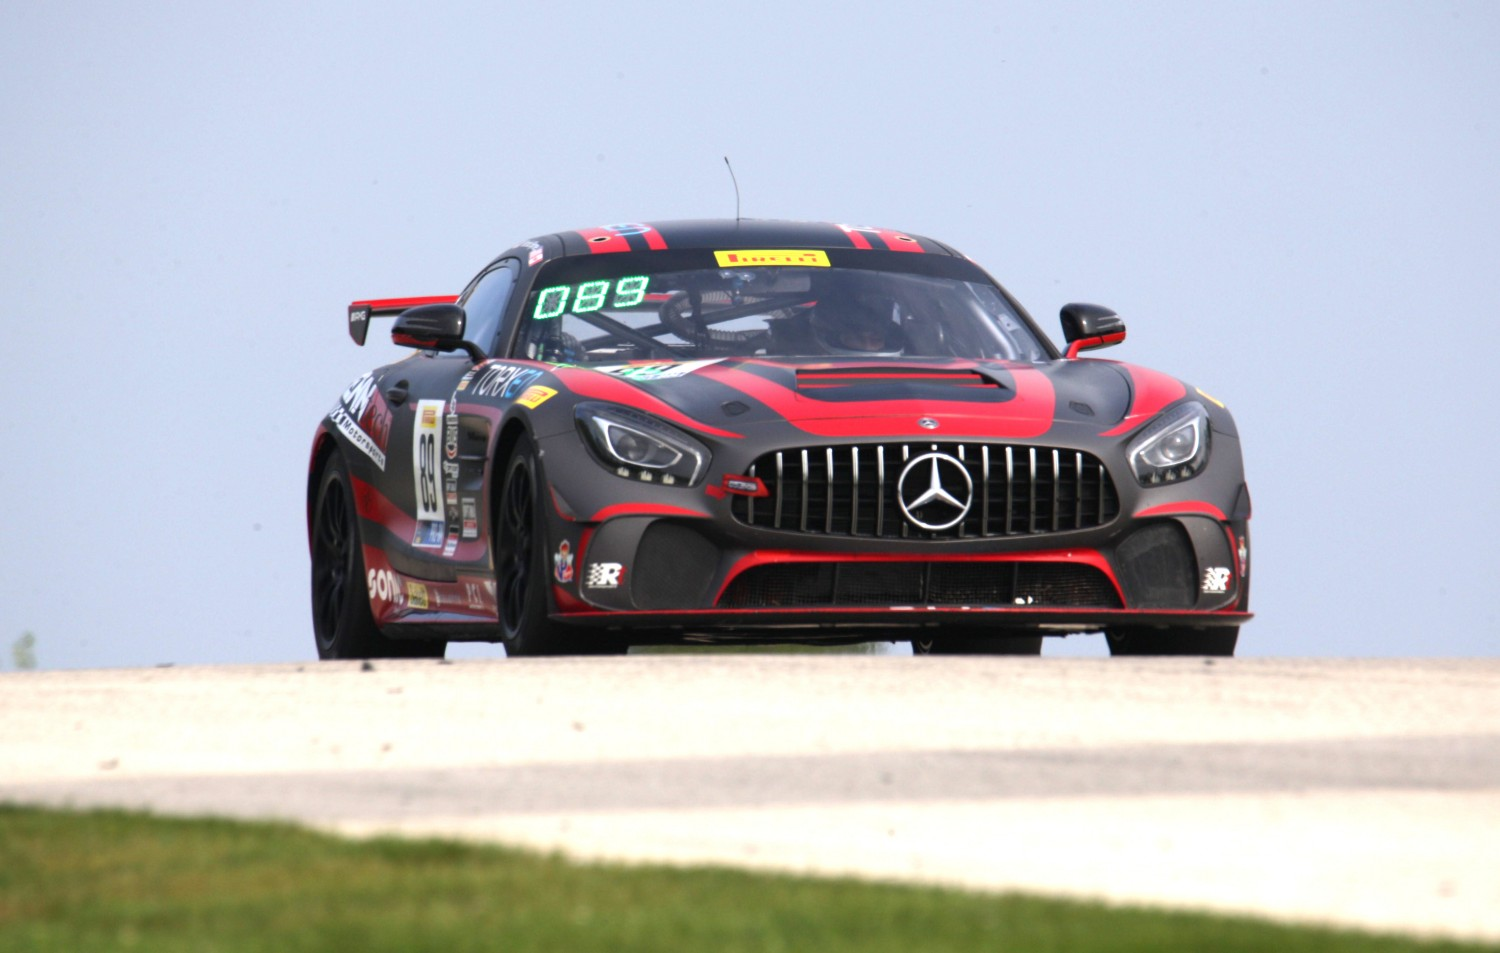 Patrick Byrne Leads Final Pirelli GT4 America Practice Session at America's National Park of Speed, Road America